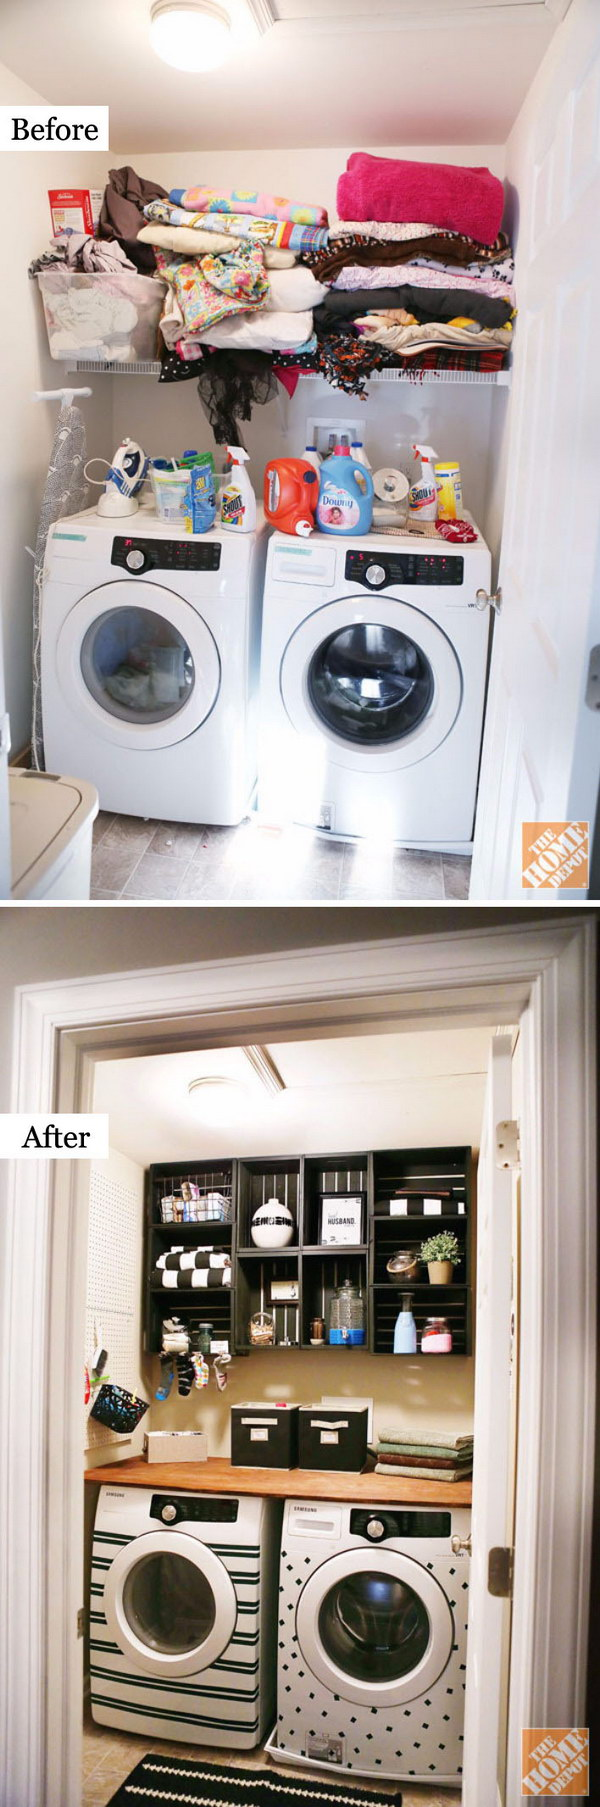 awesome before and after laundry room makeovers hative. Black Bedroom Furniture Sets. Home Design Ideas